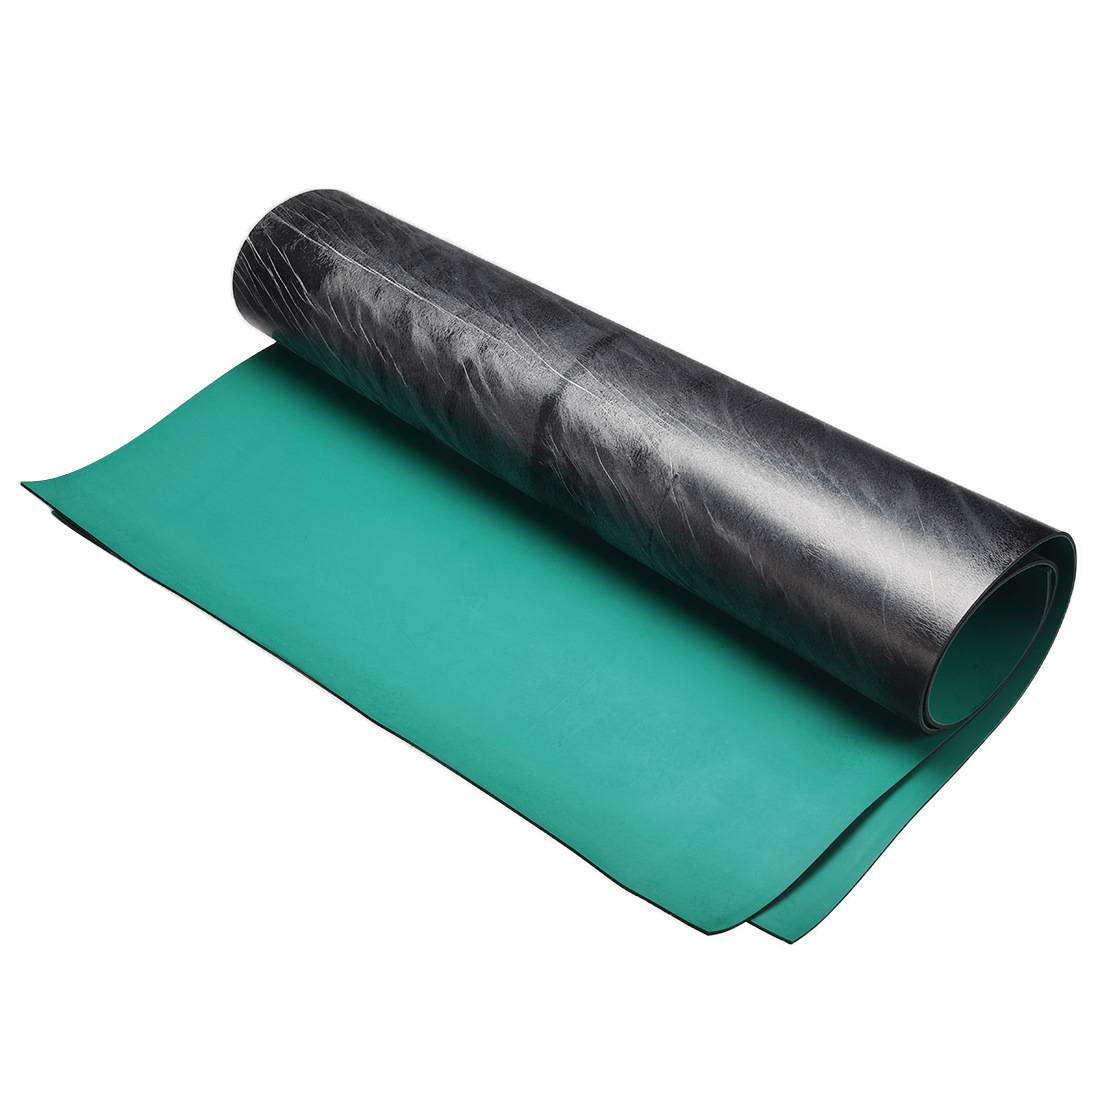 Anti Static ESD Mat High Temperature Rubber Table Mat 610x510mm Green Black 2pcs